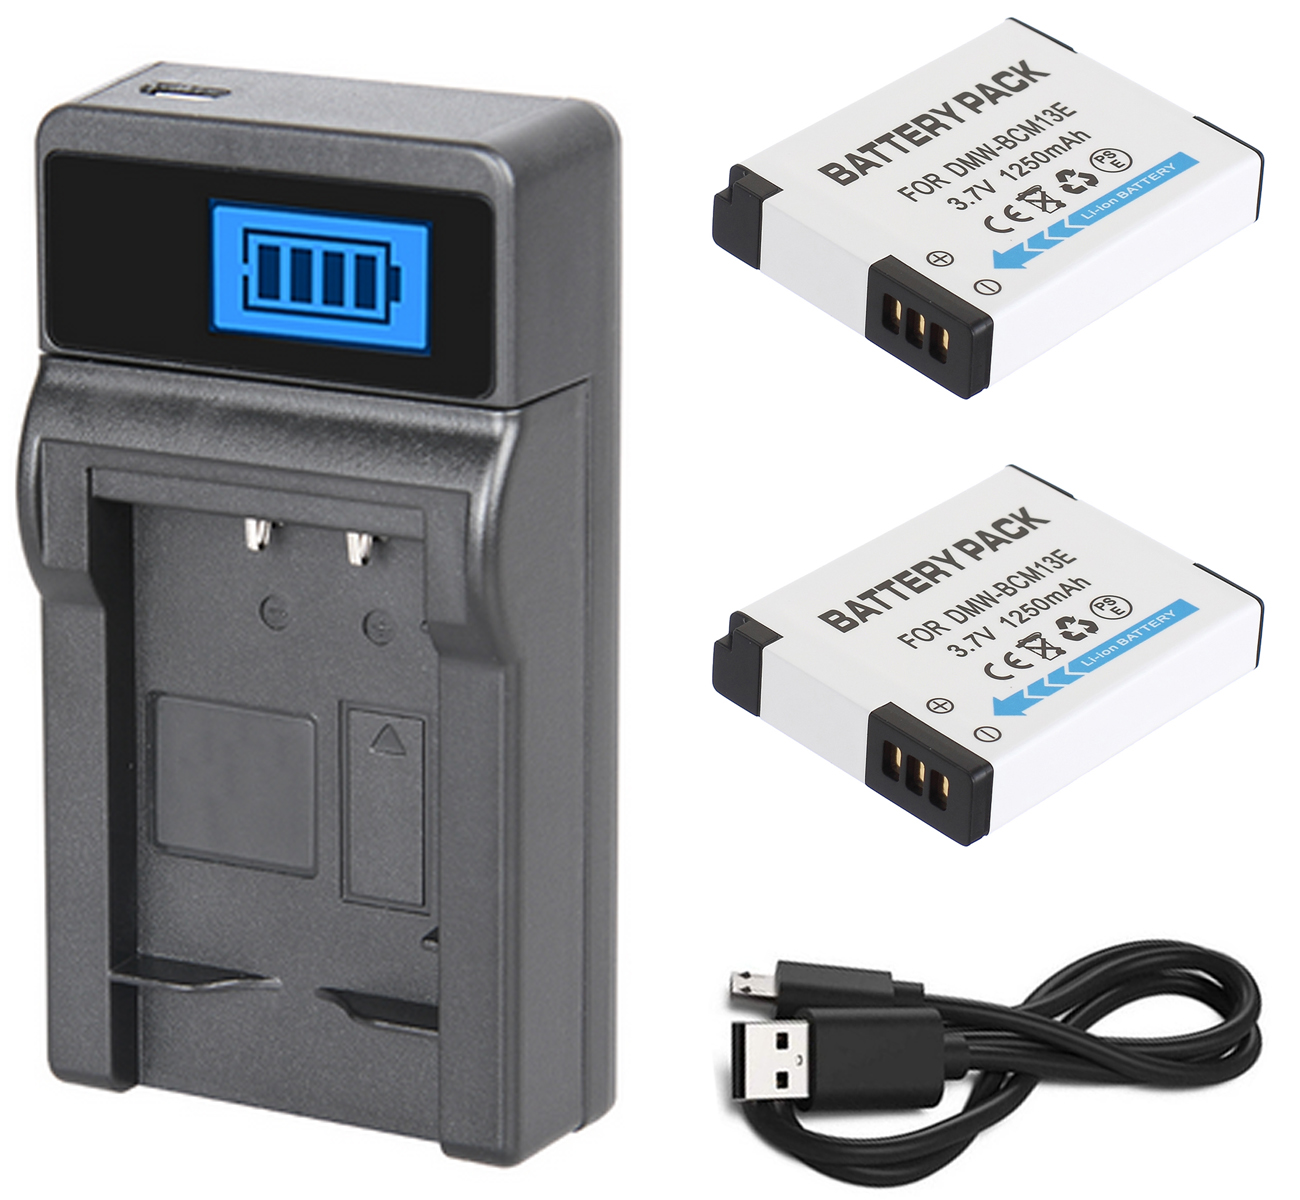 Battery (2-Pack) + Charger For Panasonic Lumix DMC-TZ40, DMC-TZ41, DMC-TZ60, DMC-TZ61, DMC-TZ70, DMC-TZ71 Digital Camera